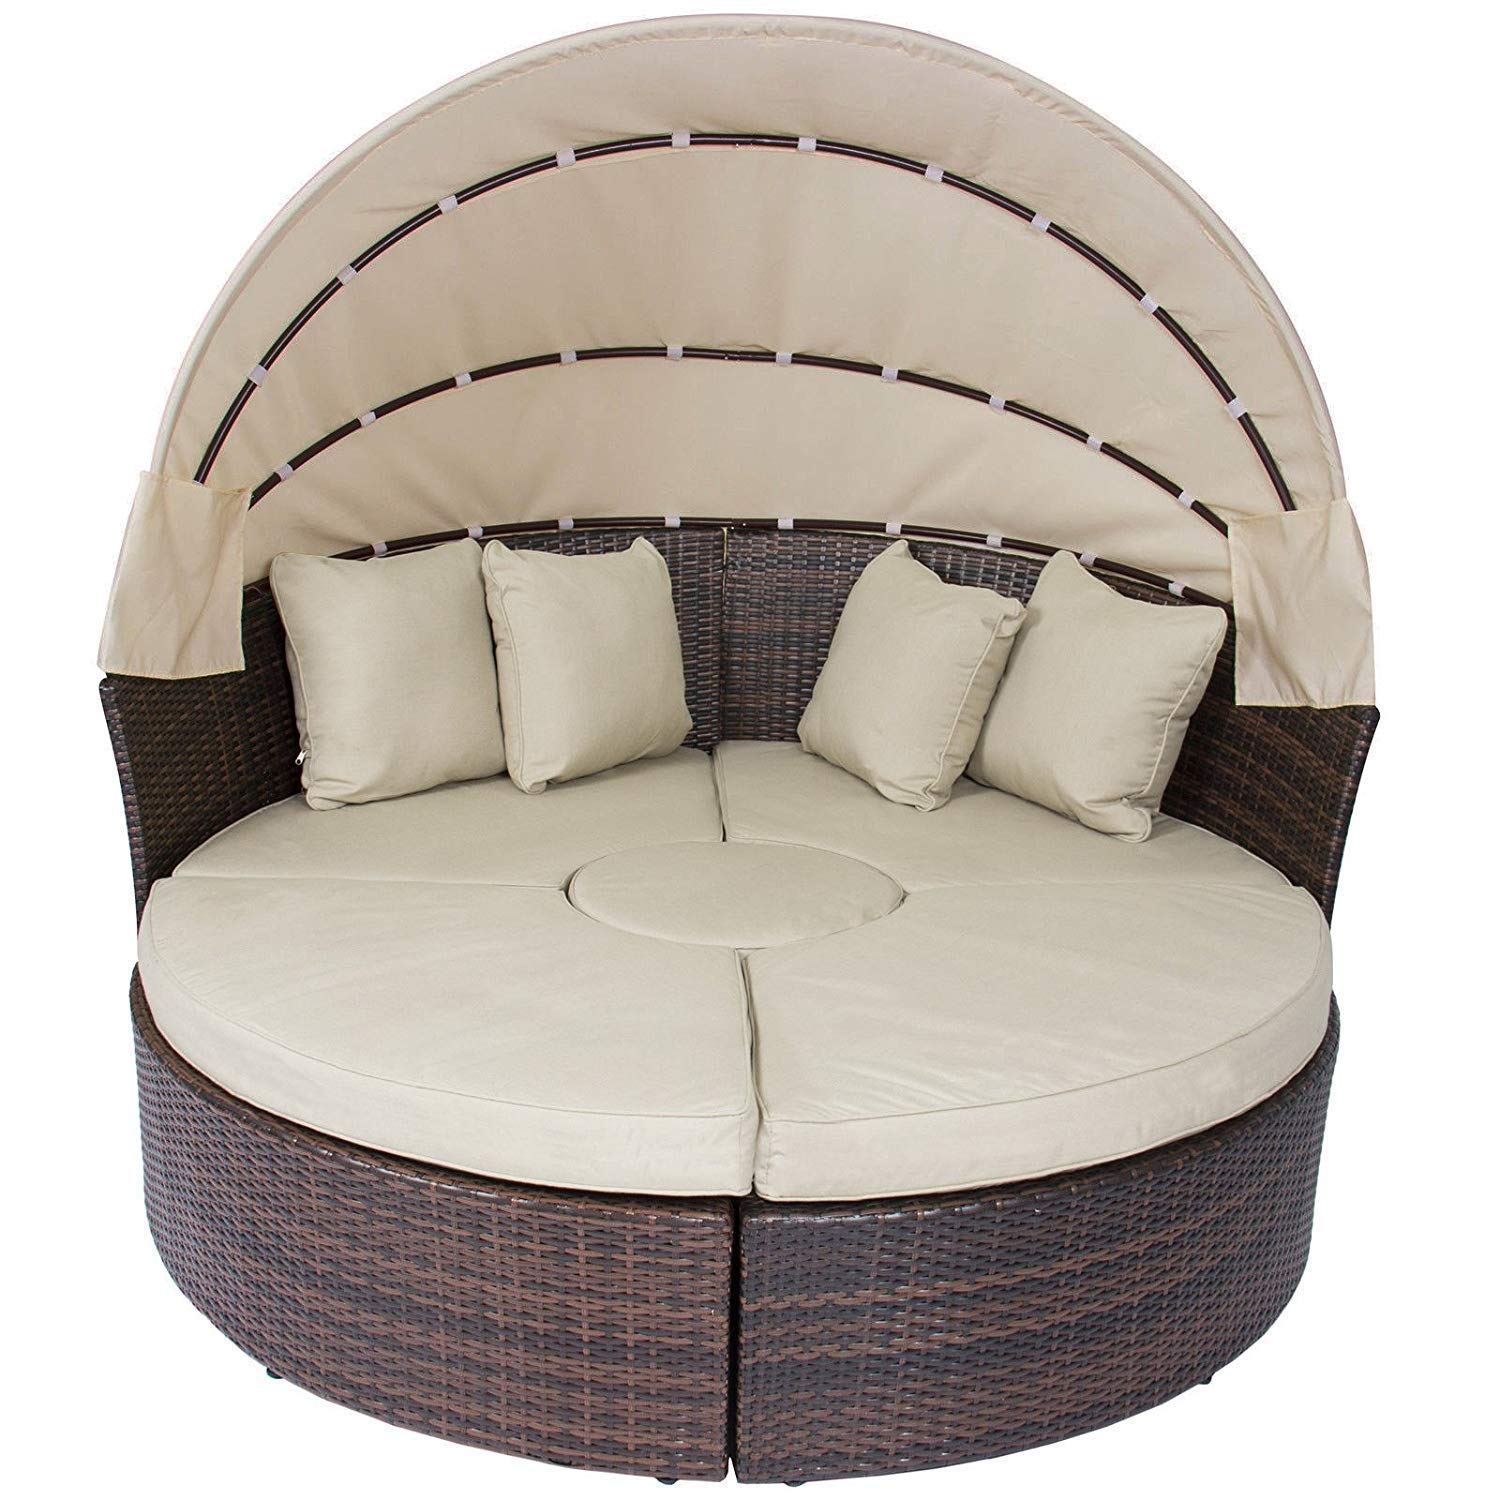 Long World 4 pc Outdoor Furniture Sets Patio Wicker Rattan Round Daybed Chaise W/Retractable Canopy,Seating Separates,Washable Cushions for Lawn Backyard Pool Garden